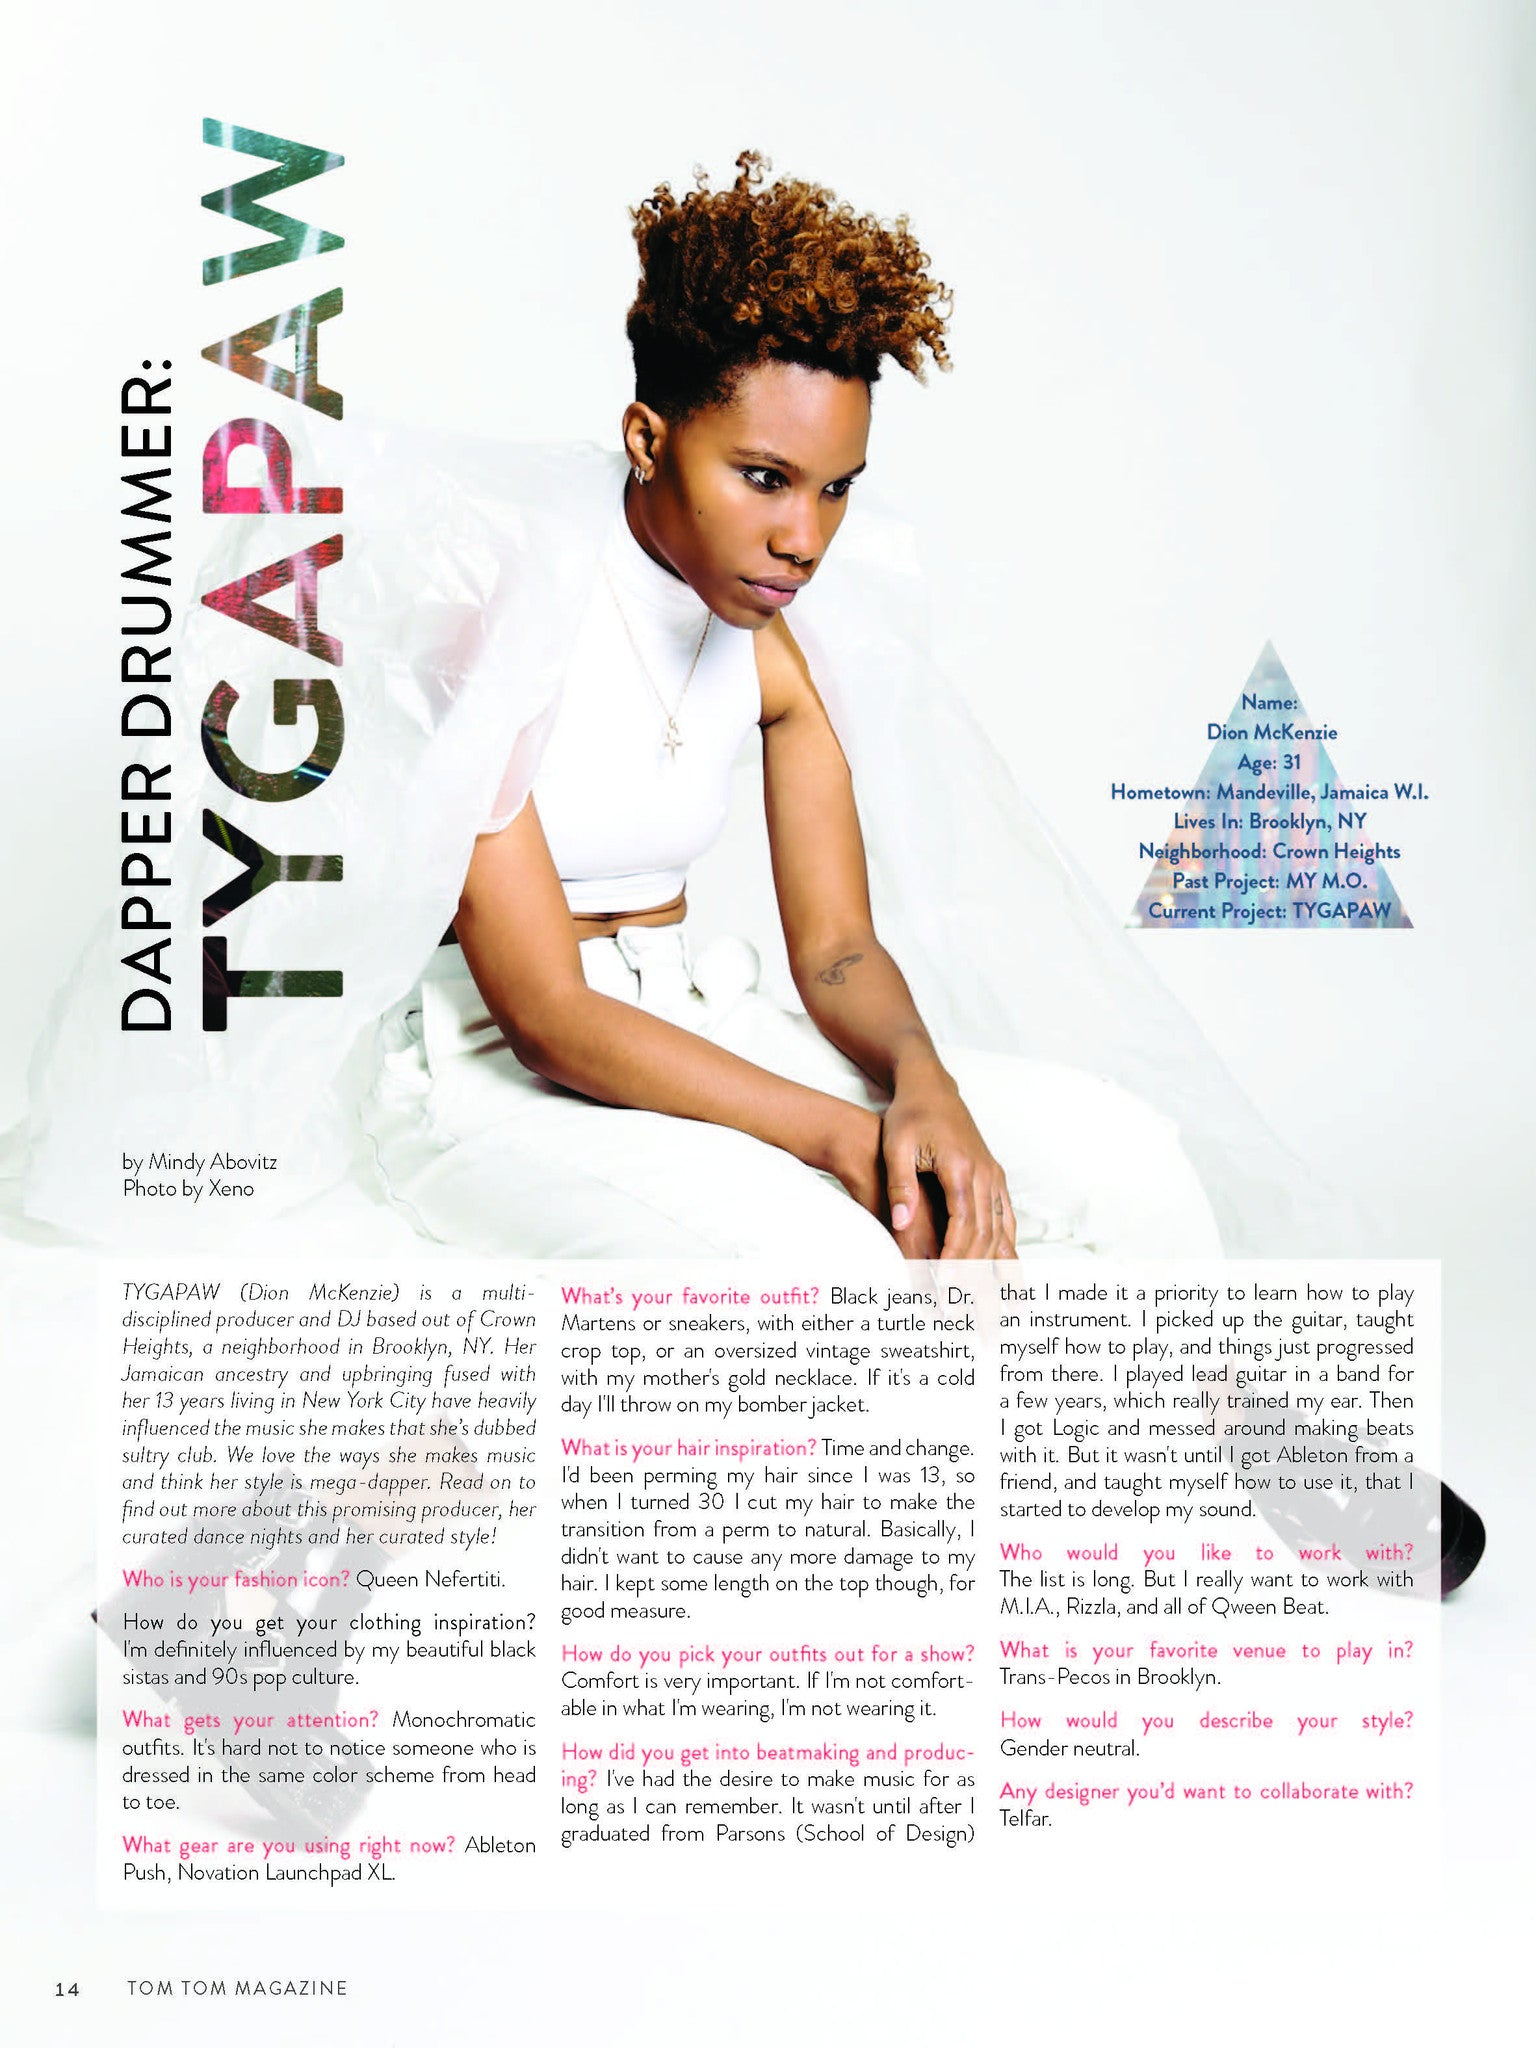 Tom Tom Magazine Issue 24: TIME - Drummers | Music | Feminism: Shop Tom Tom